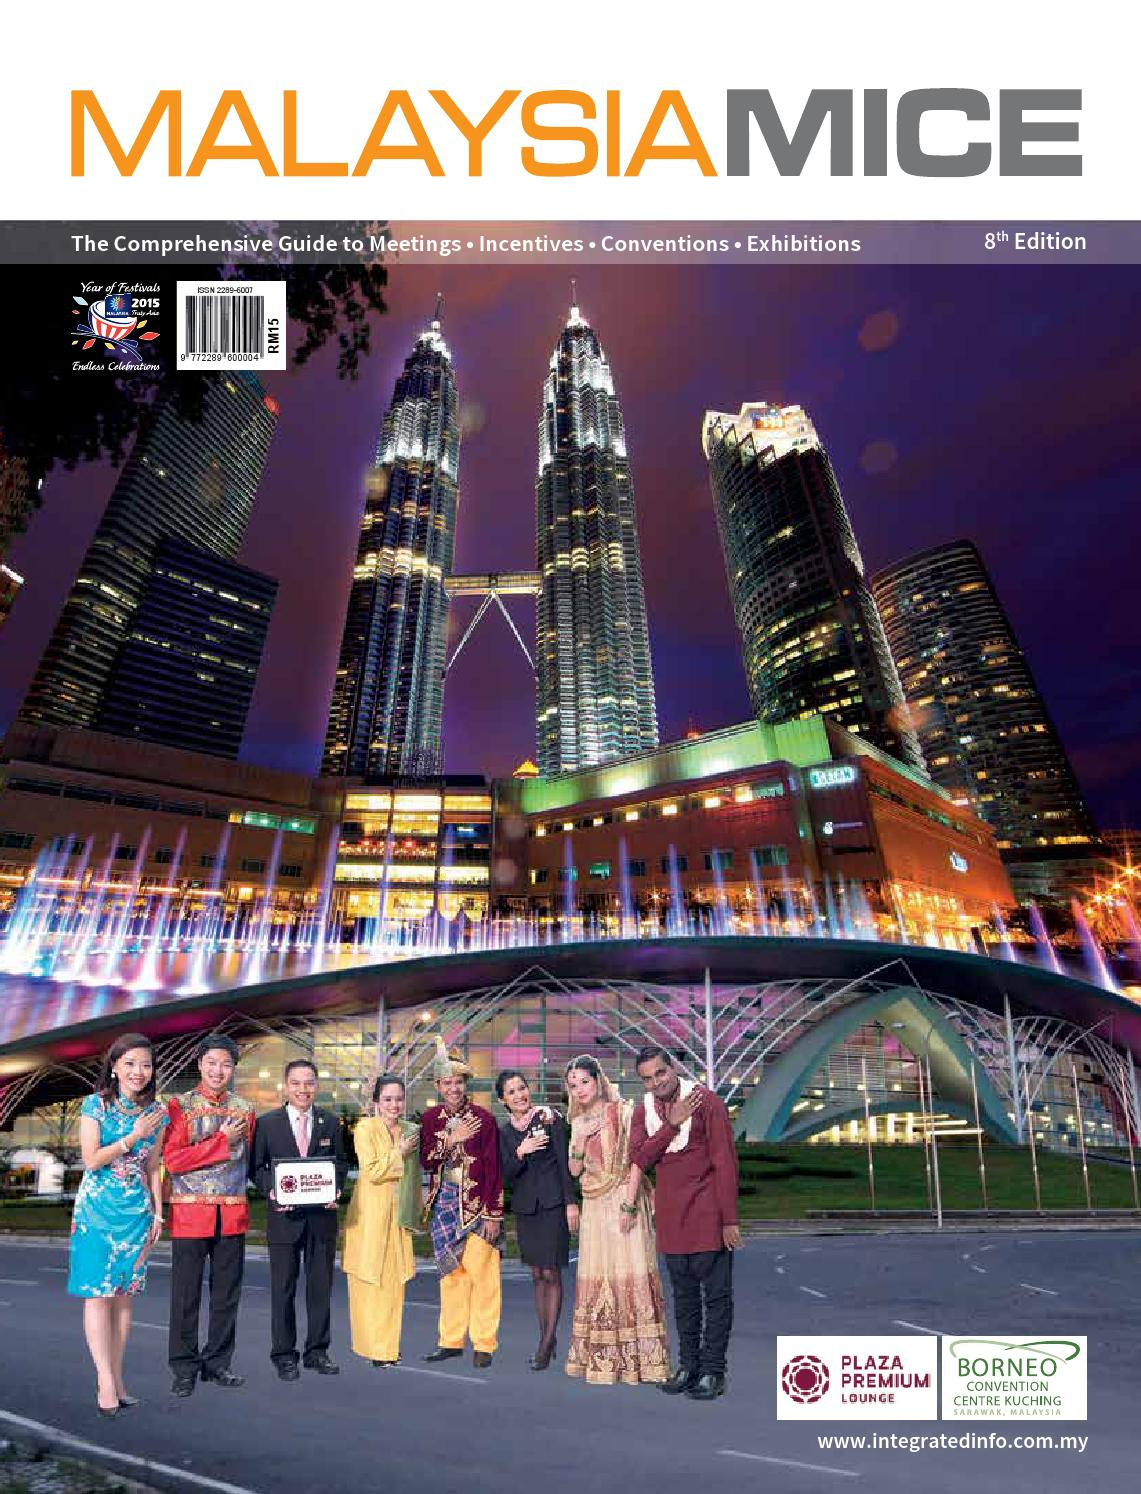 Malaysia Mice 2015 8th Edition By Tourism Publications Corporation Police 14796jsu 02 Hitam Jarum Orange Sdn Bhd Issuu